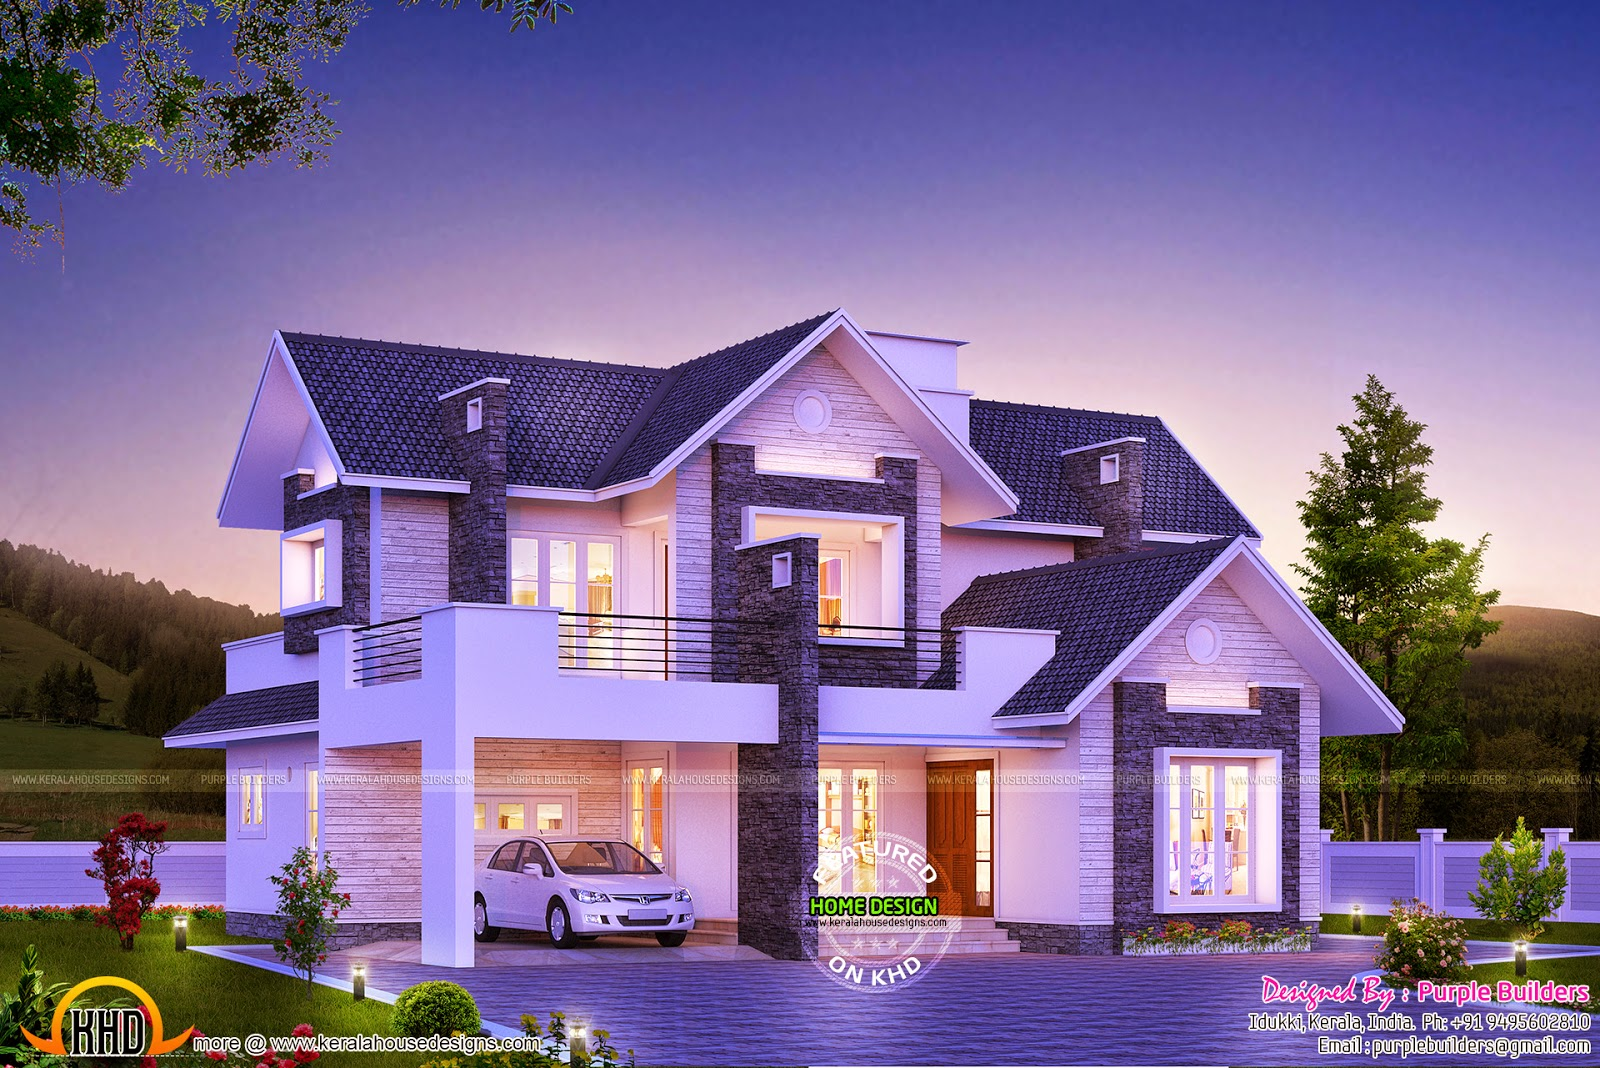 Super dream home kerala home design and floor plans for Home builder contractors